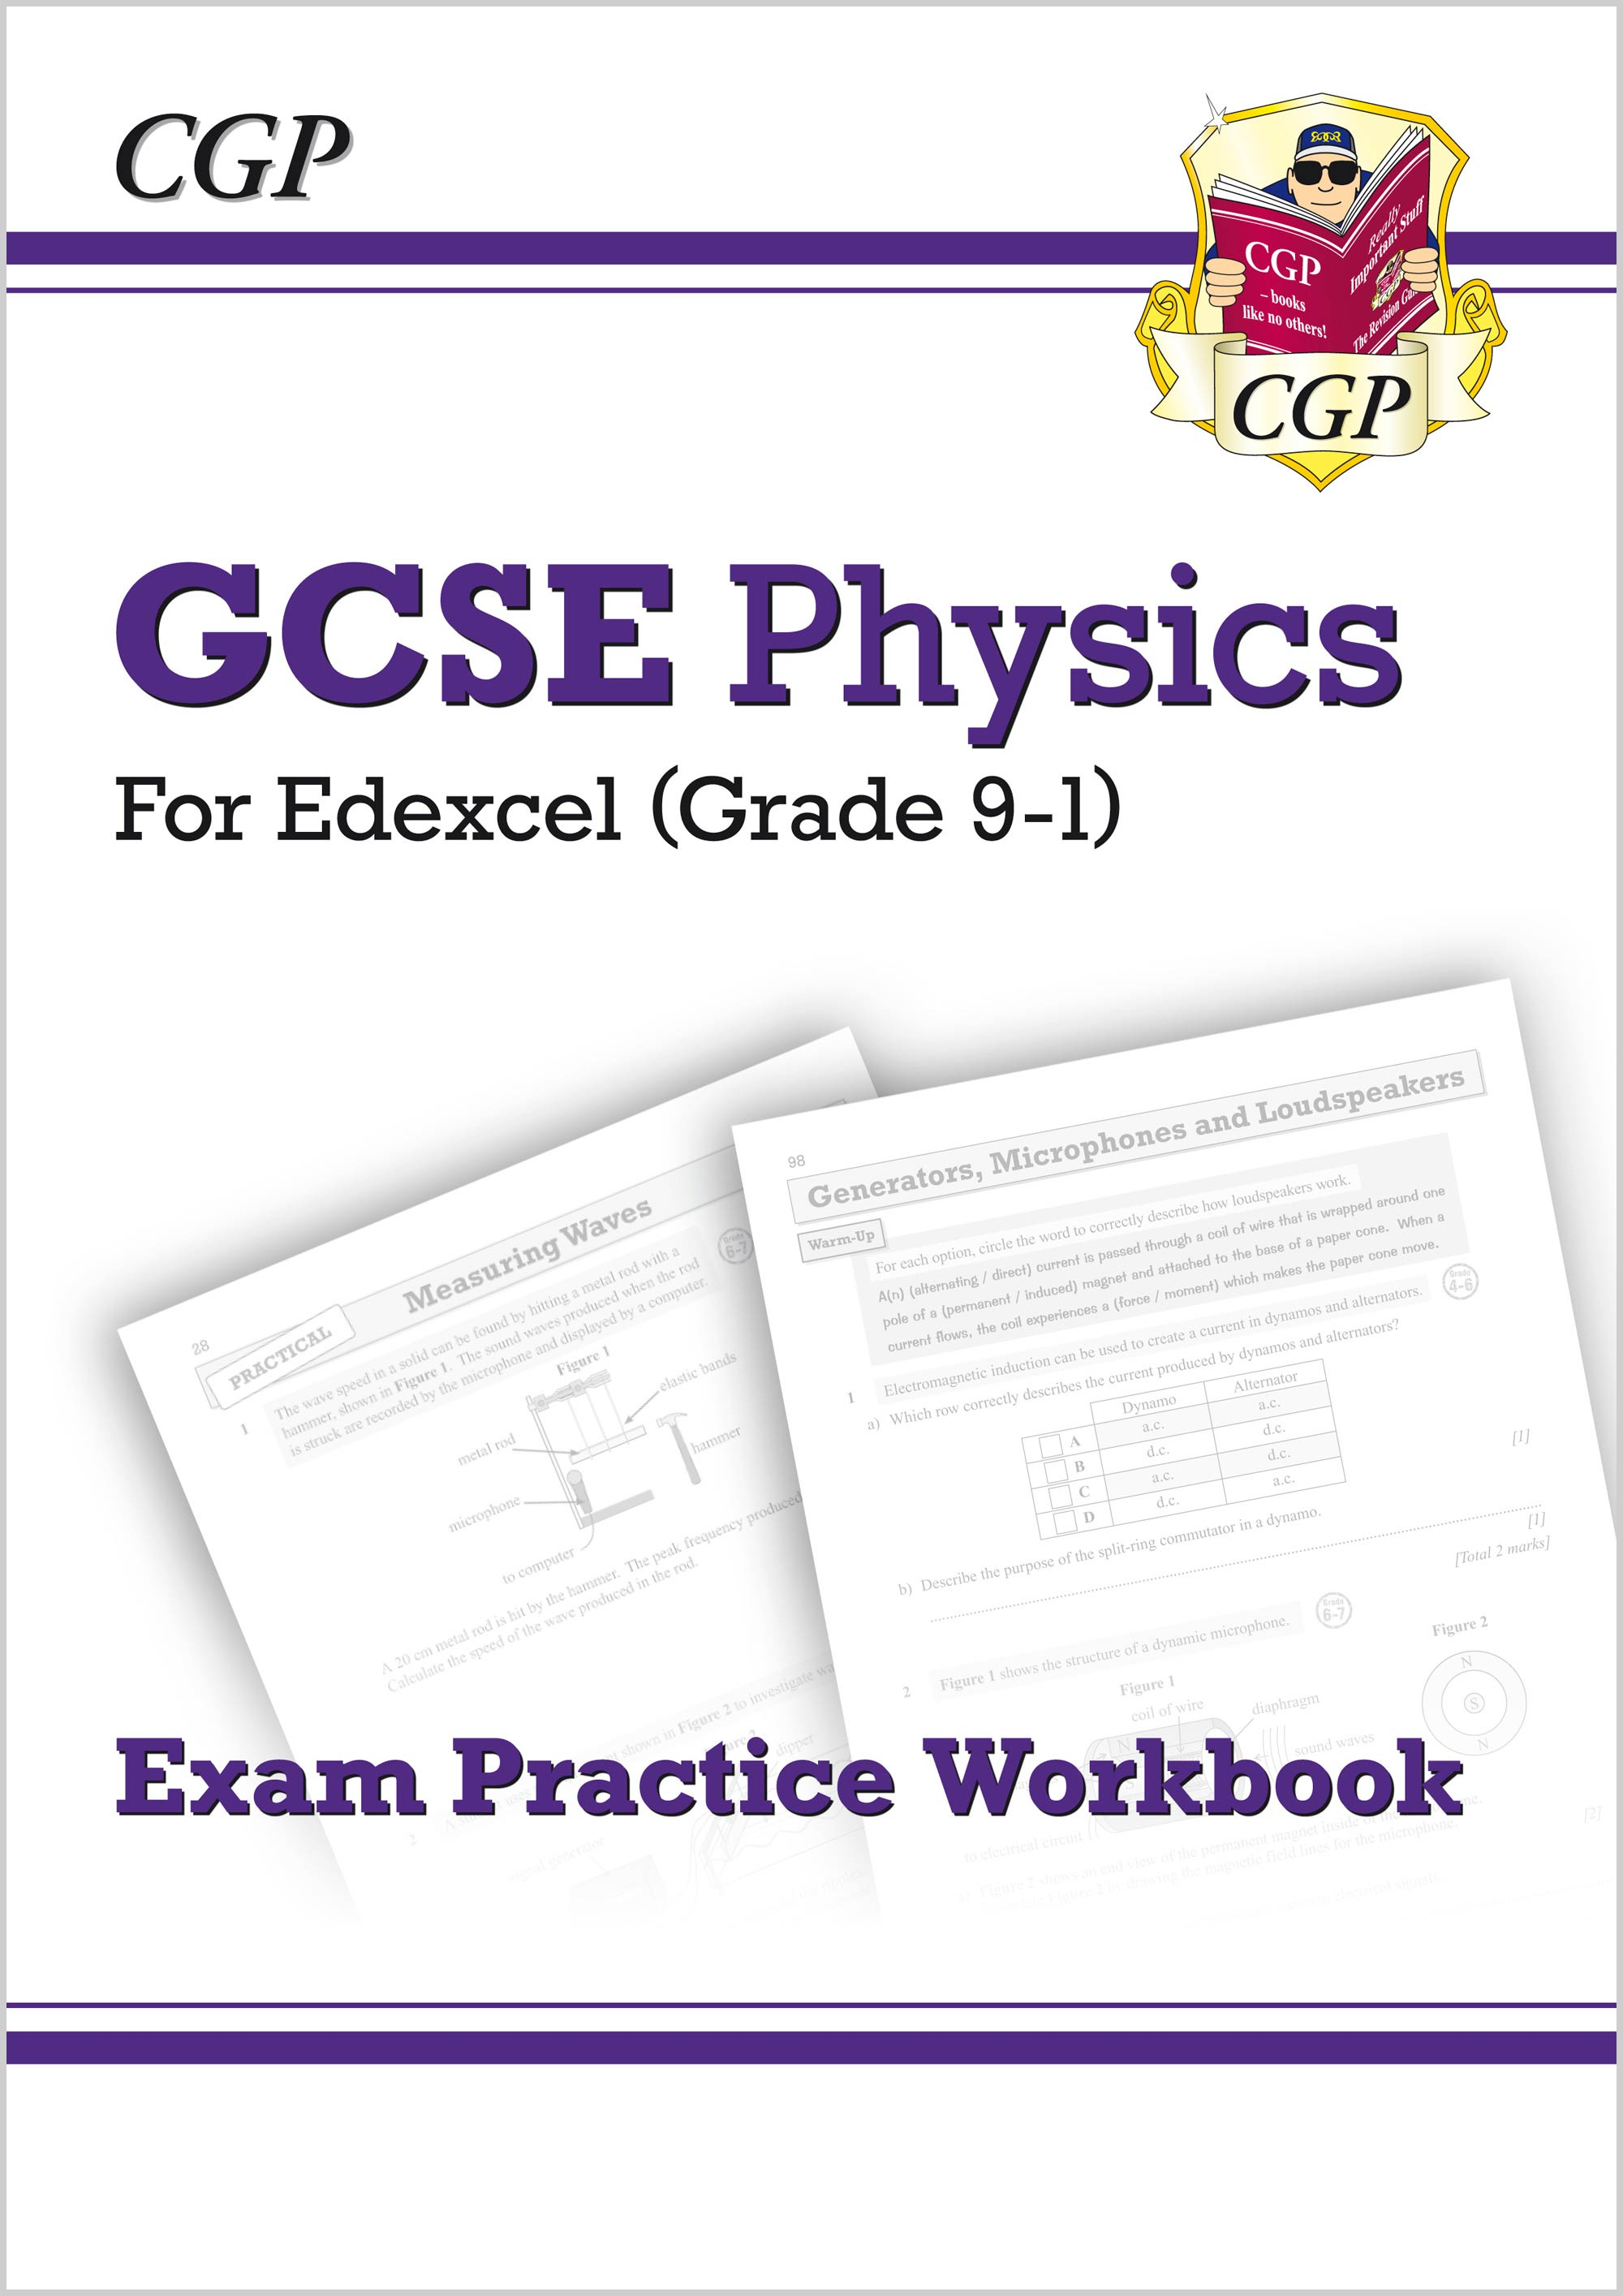 Grade 9-1 GCSE Physics: Edexcel Exam Practice Workbook